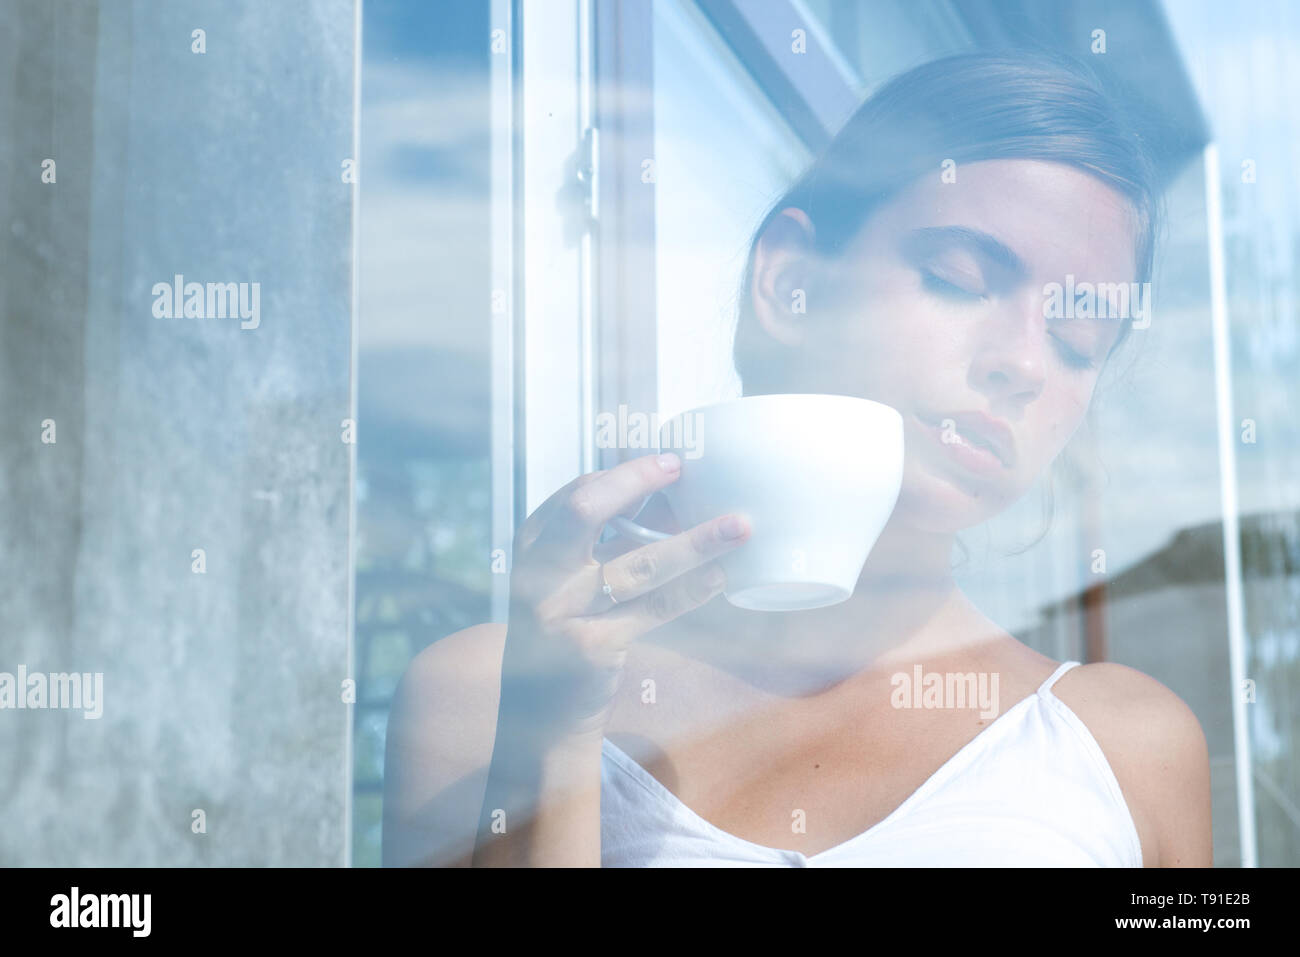 americano or espresso latte of girl. girl relax in cafe and drink. perfect morning with best coffee. woman drink coffee from cup. Morning coffee - Stock Image